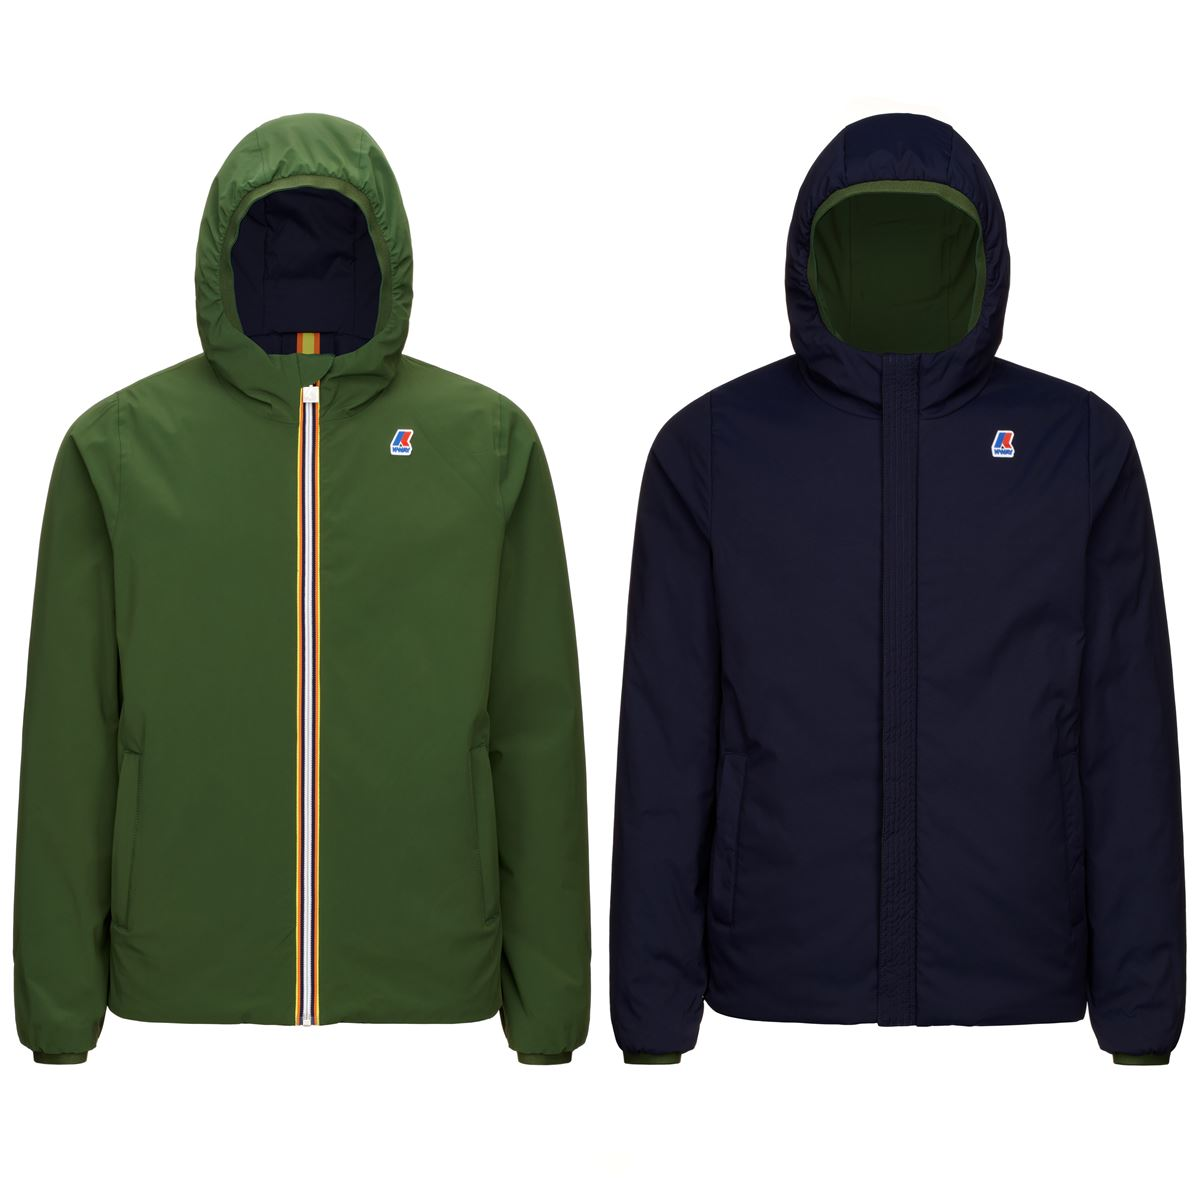 Kway Jacques Warm Double Verde Dk Foresta Blu Marittime